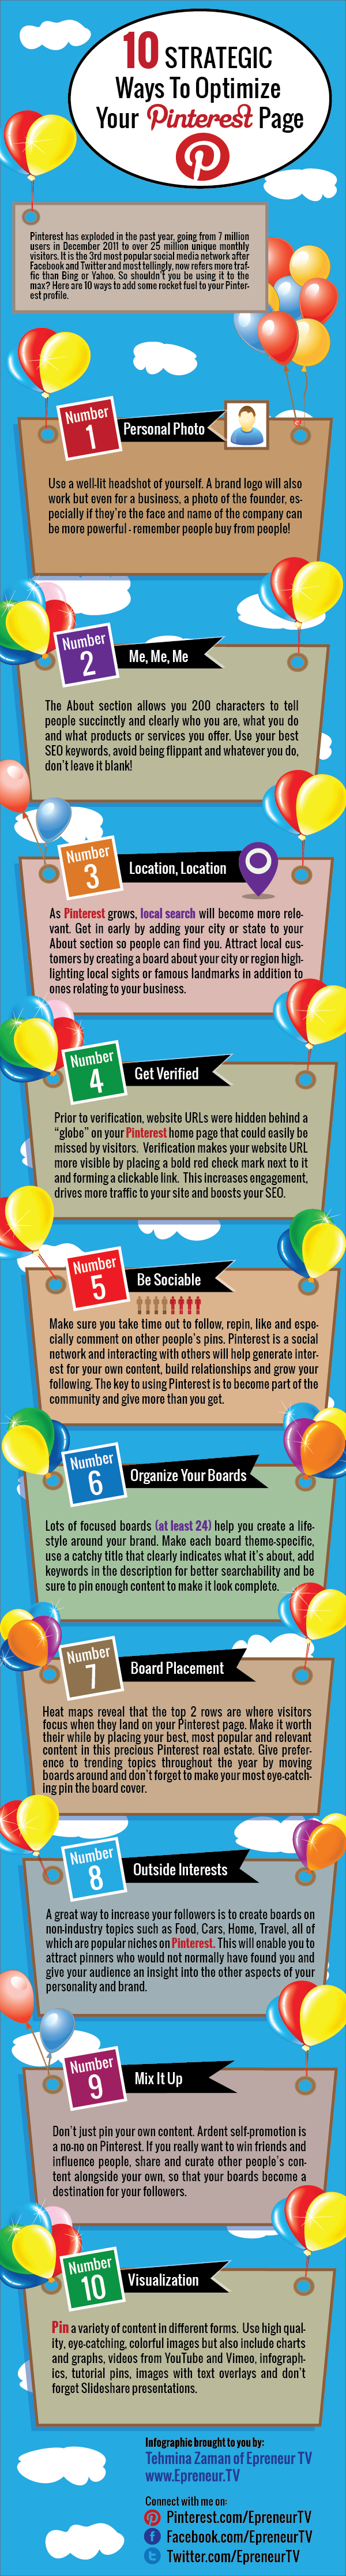 Infographic - Pinterest Optimization